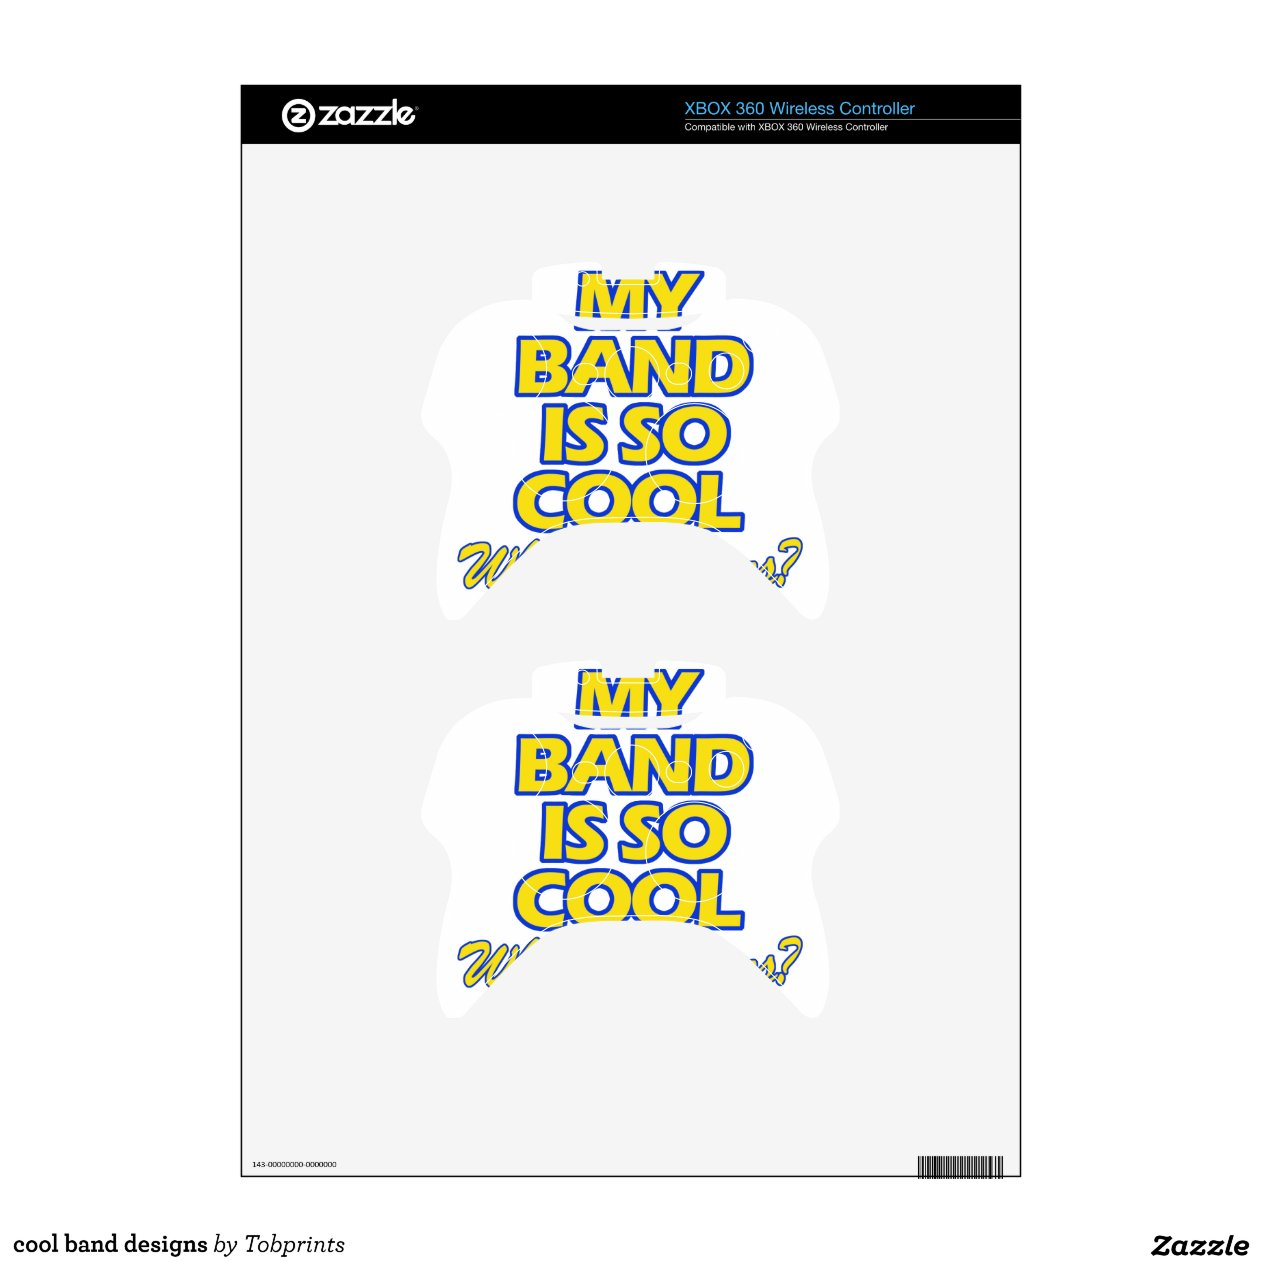 cool_band_designs_xbox_360_controller_skin r0cd91dc40a364026b537dcfee60773d4_fhl4f_8byvr_1200?resize\\\=665%2C665 bobcat s100 wiring diagrams kuryakyn wiring diagram \u2022 45 63 74 91  at gsmx.co